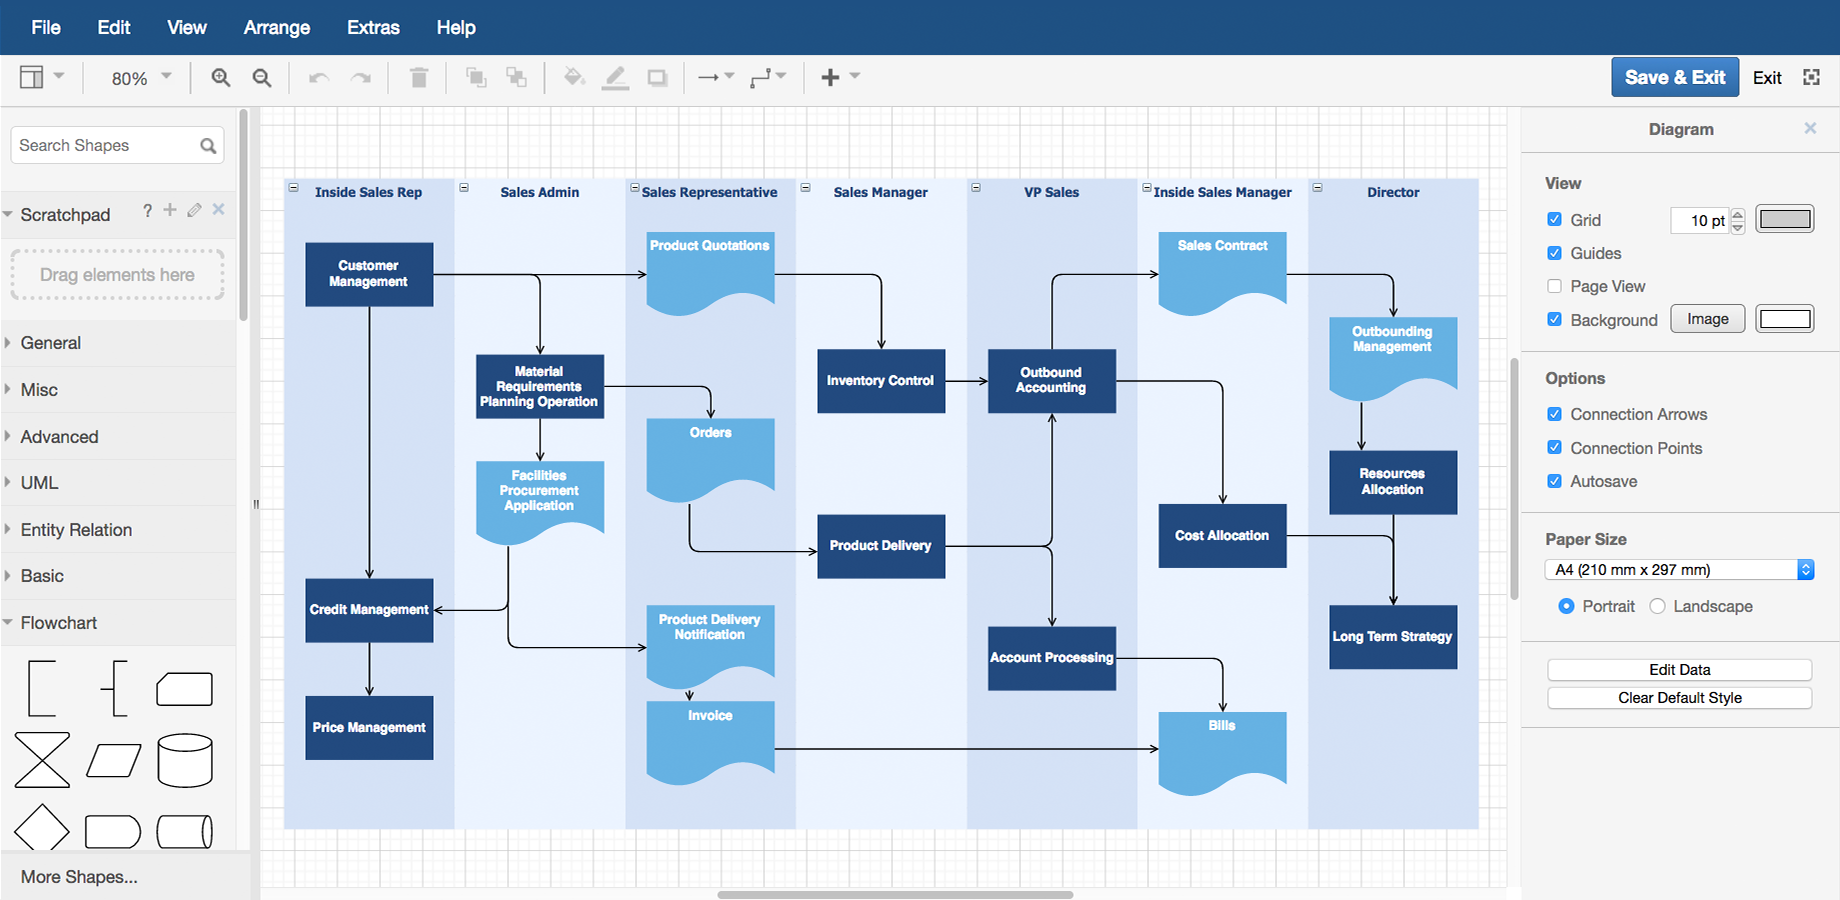 Create a flowchart in draw.io